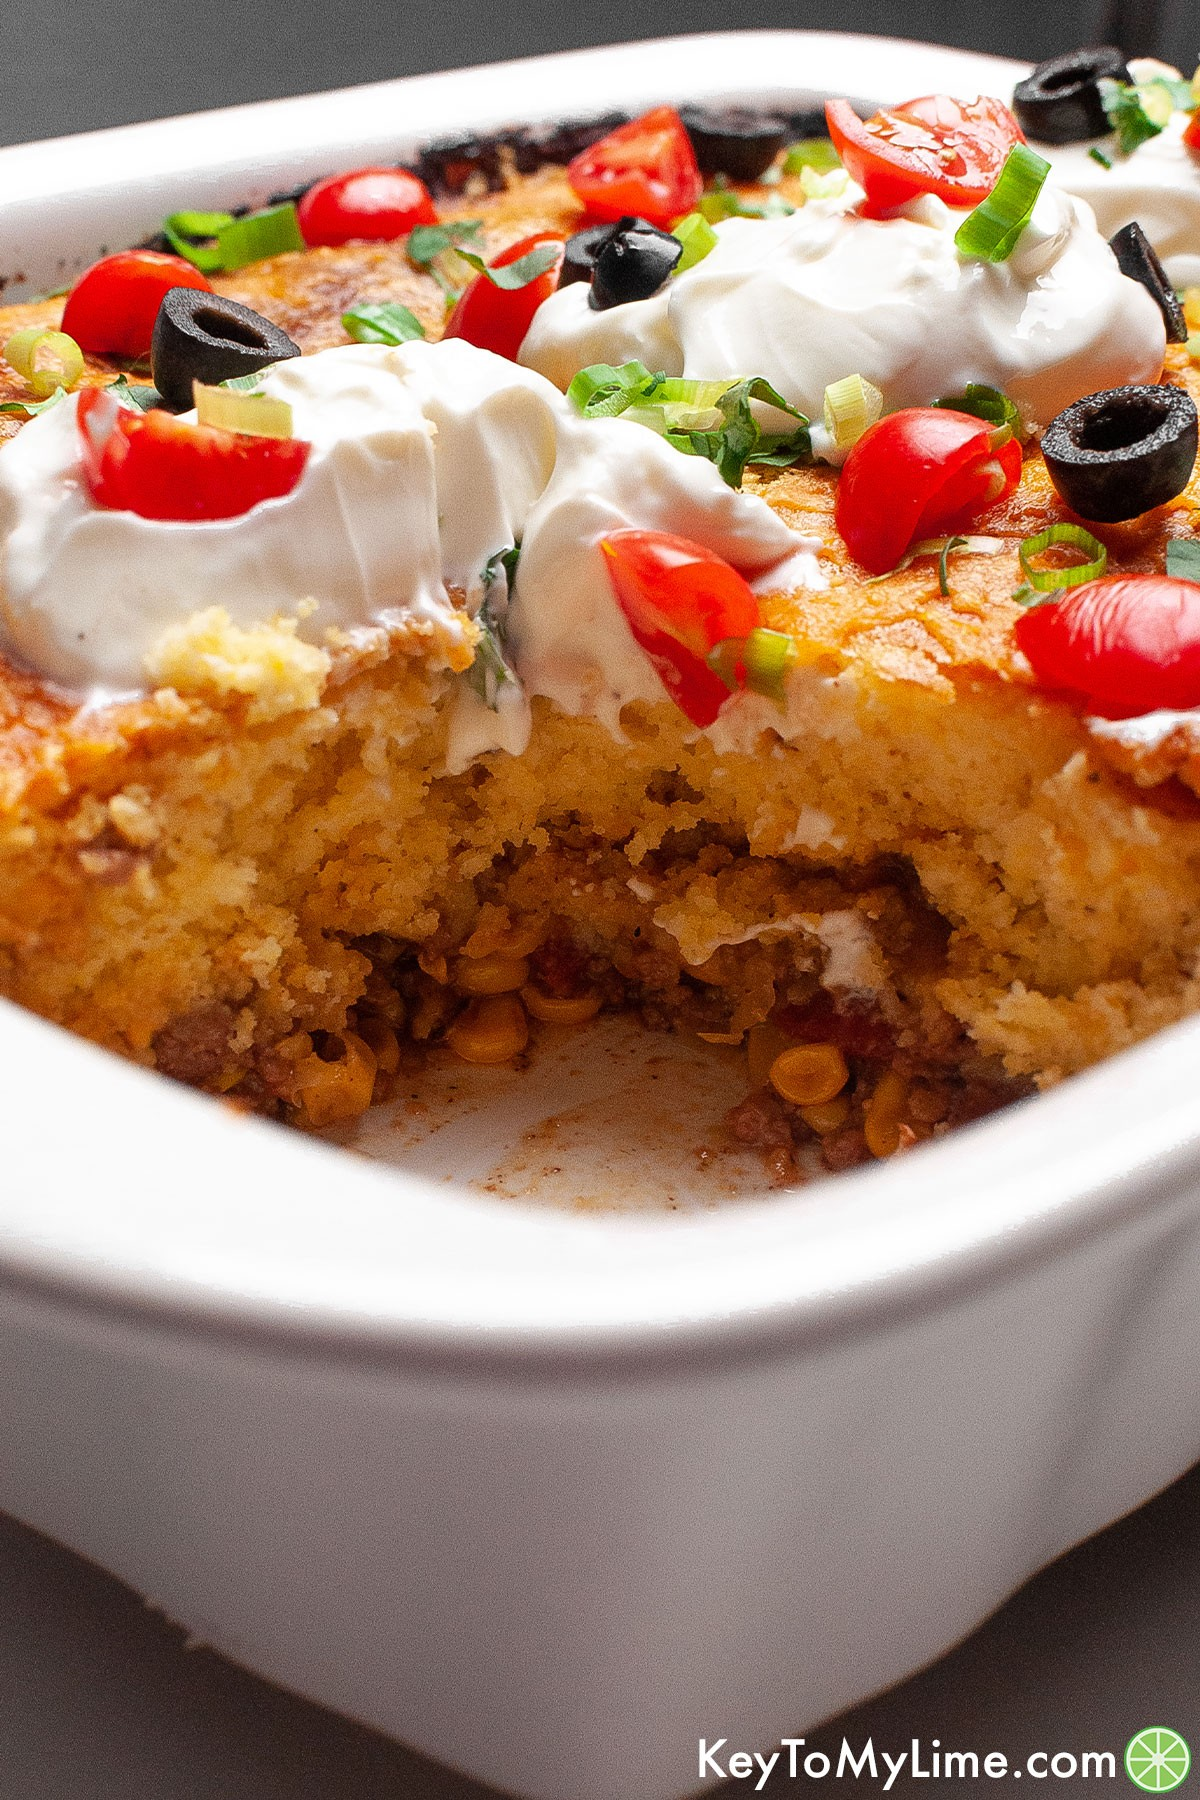 A casserole dish with a serving of Mexican cornbread casserole missing.